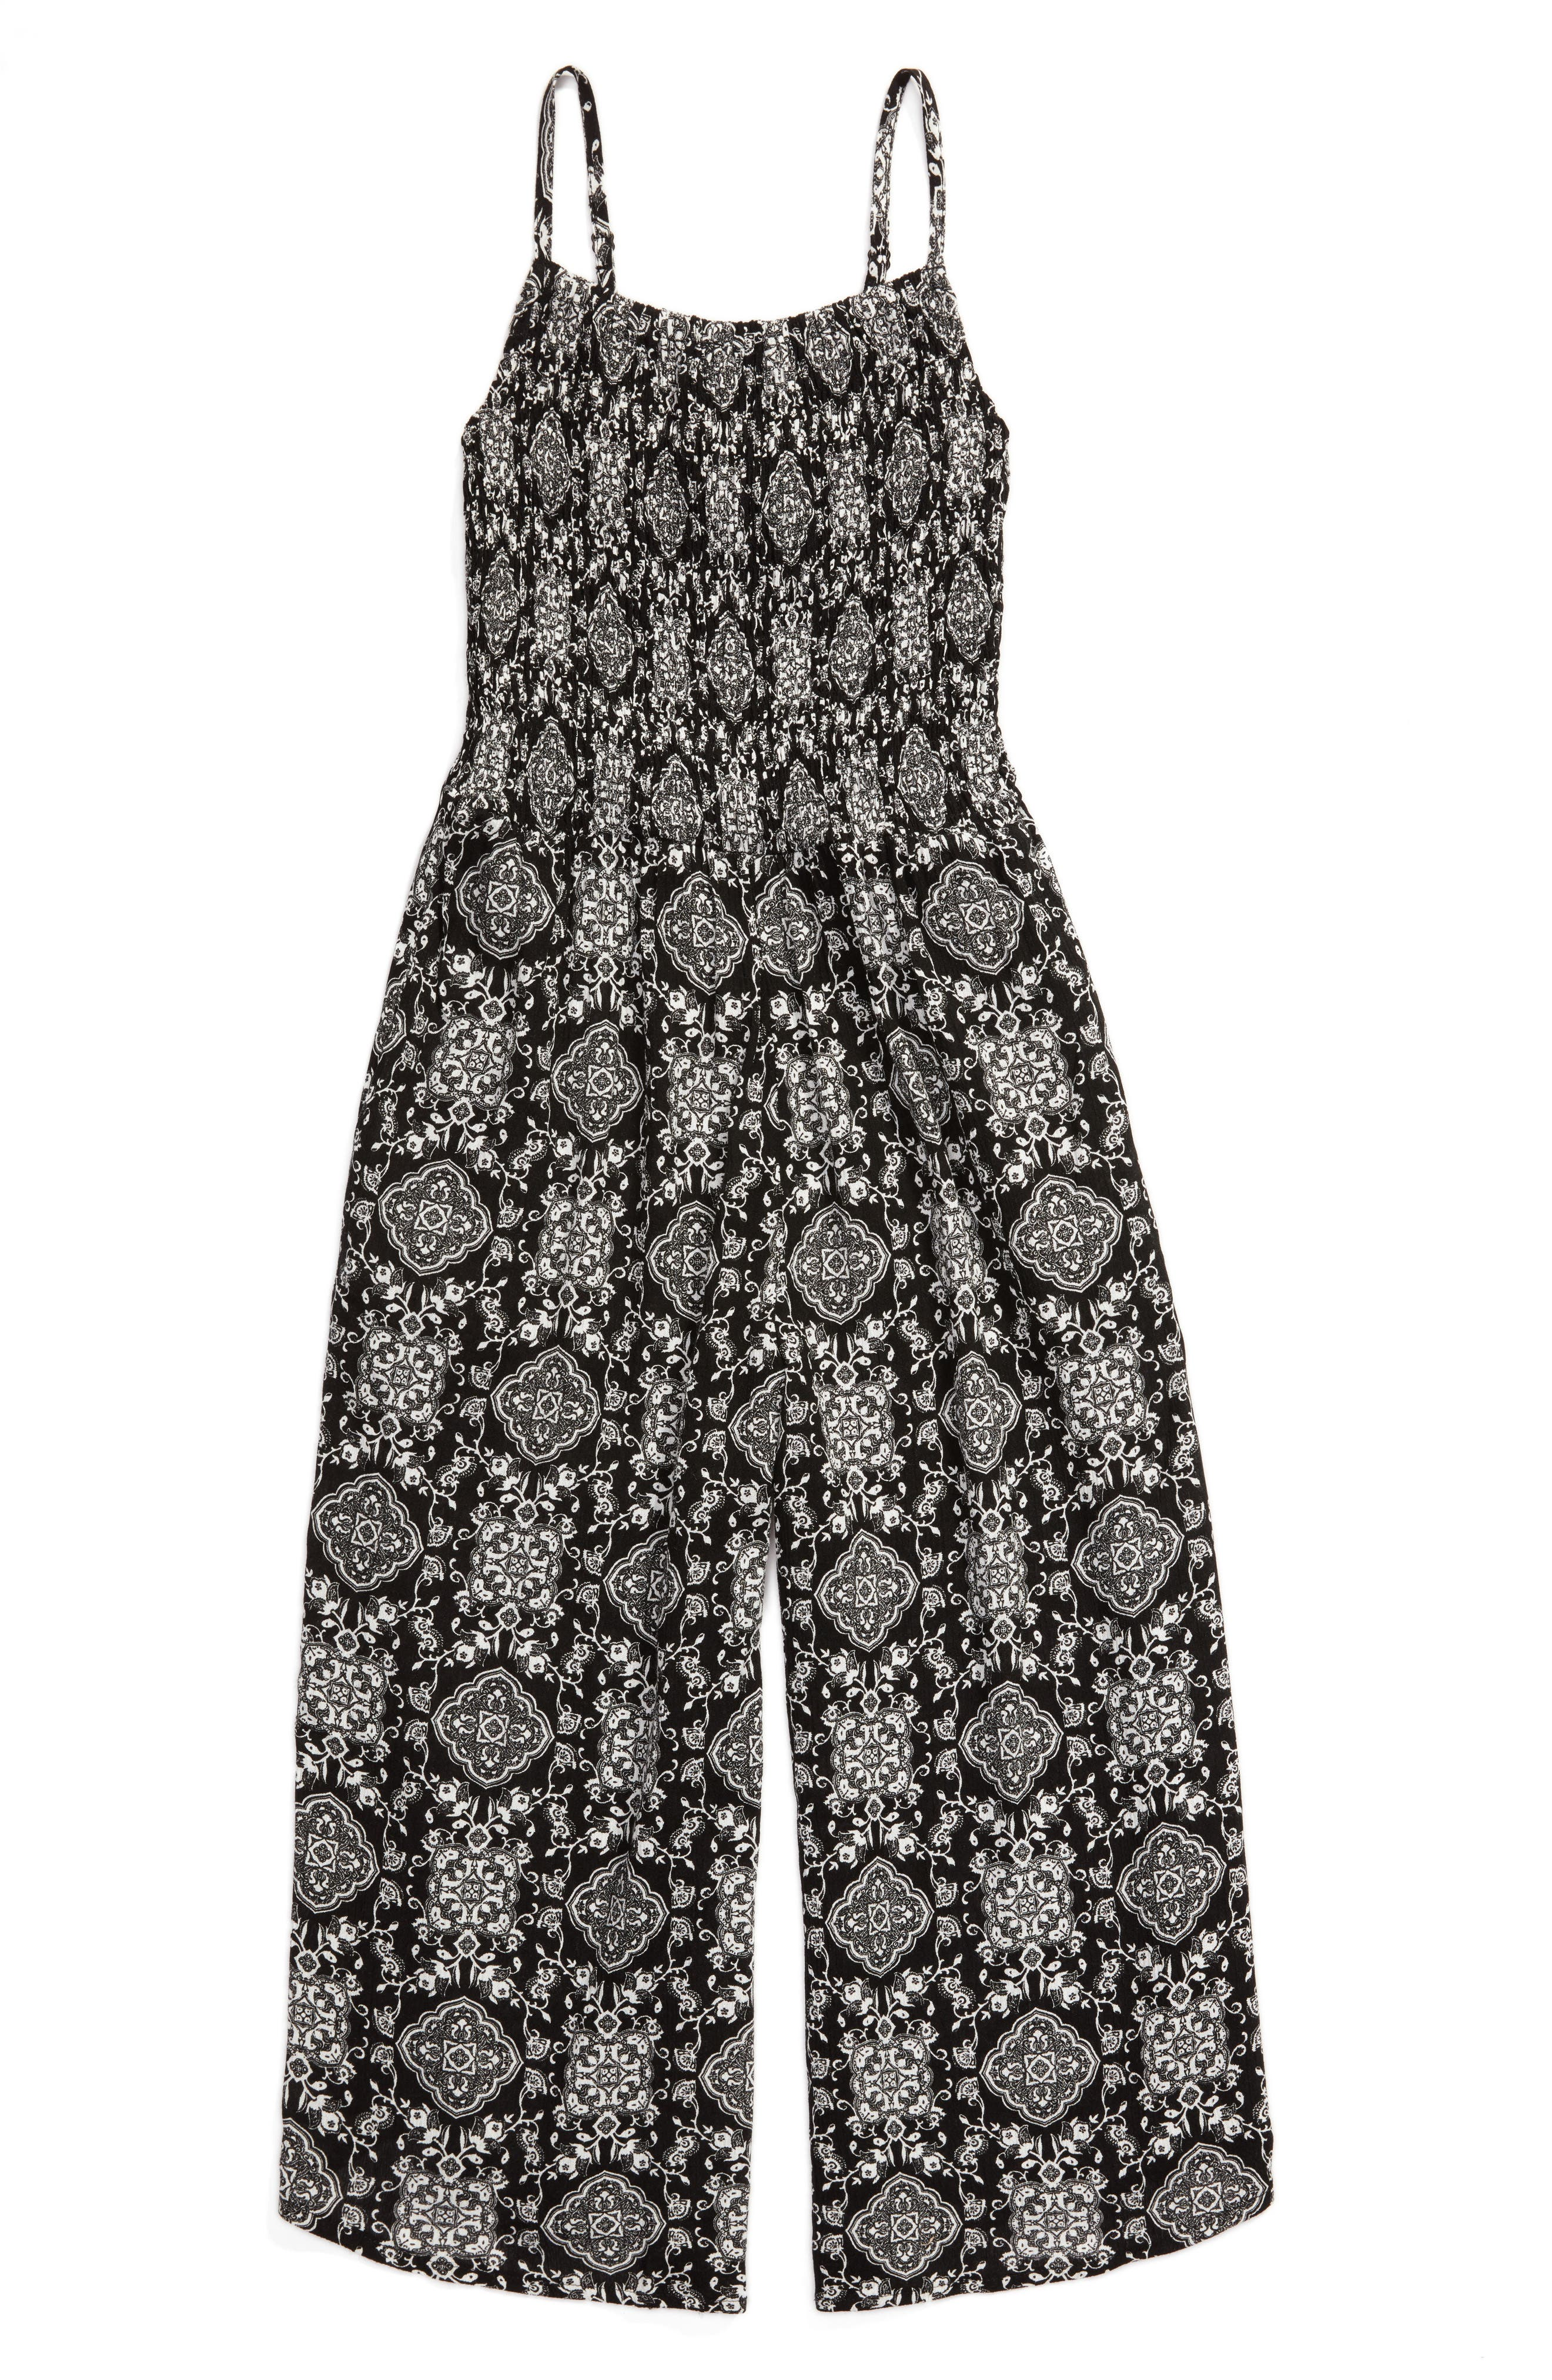 Alternate Image 1 Selected - Mia Chica Smocked Jumpsuit (Big Girls)